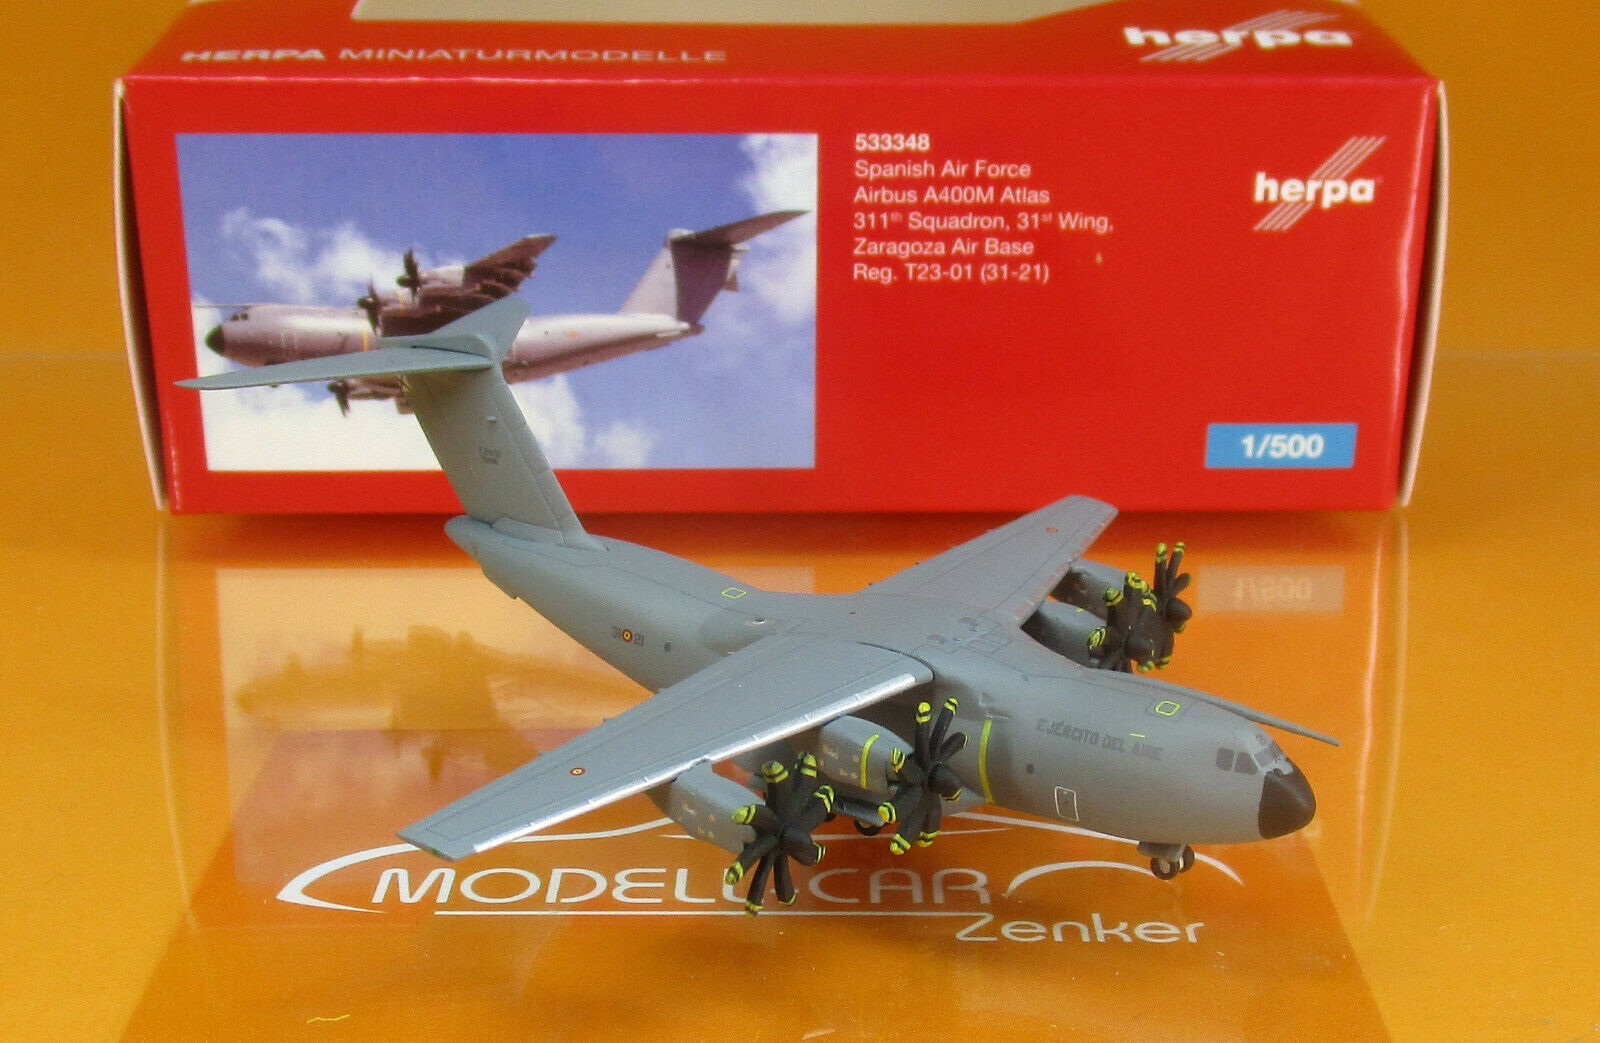 Herpa Wings 1:500 Spanish Air Force Airbus a400m Atlas 533348